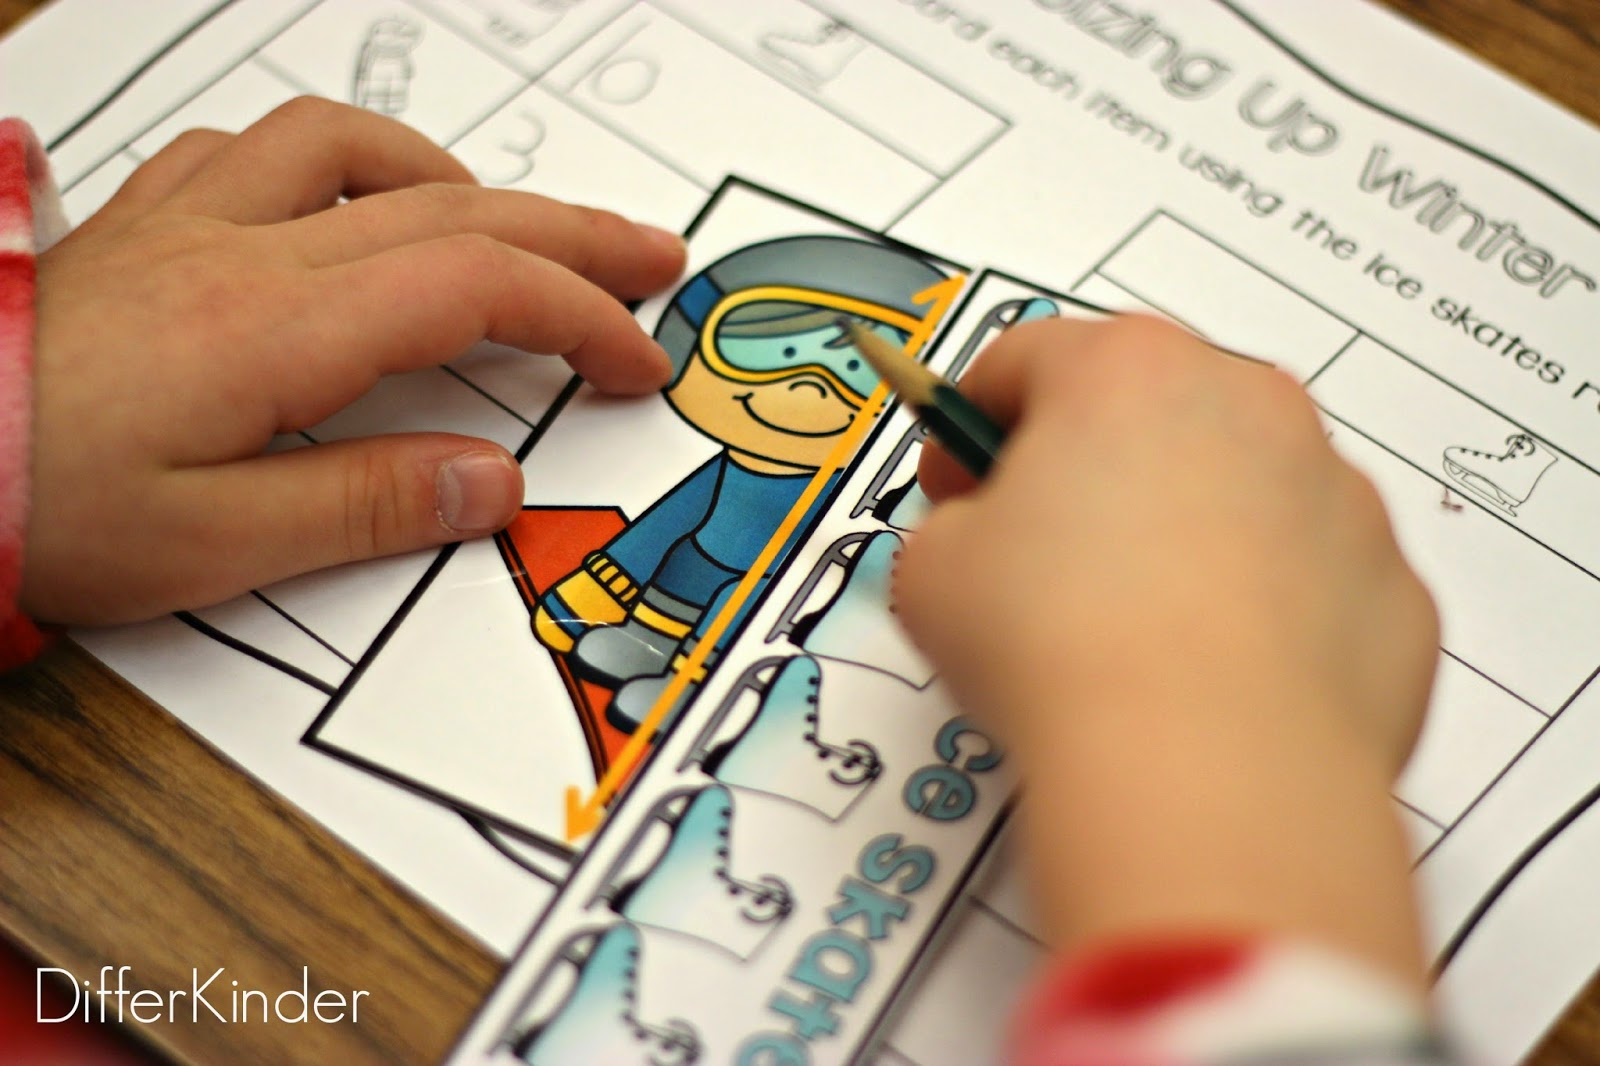 Differentiated Kindergarten Differentiated Instruction In The Classroom